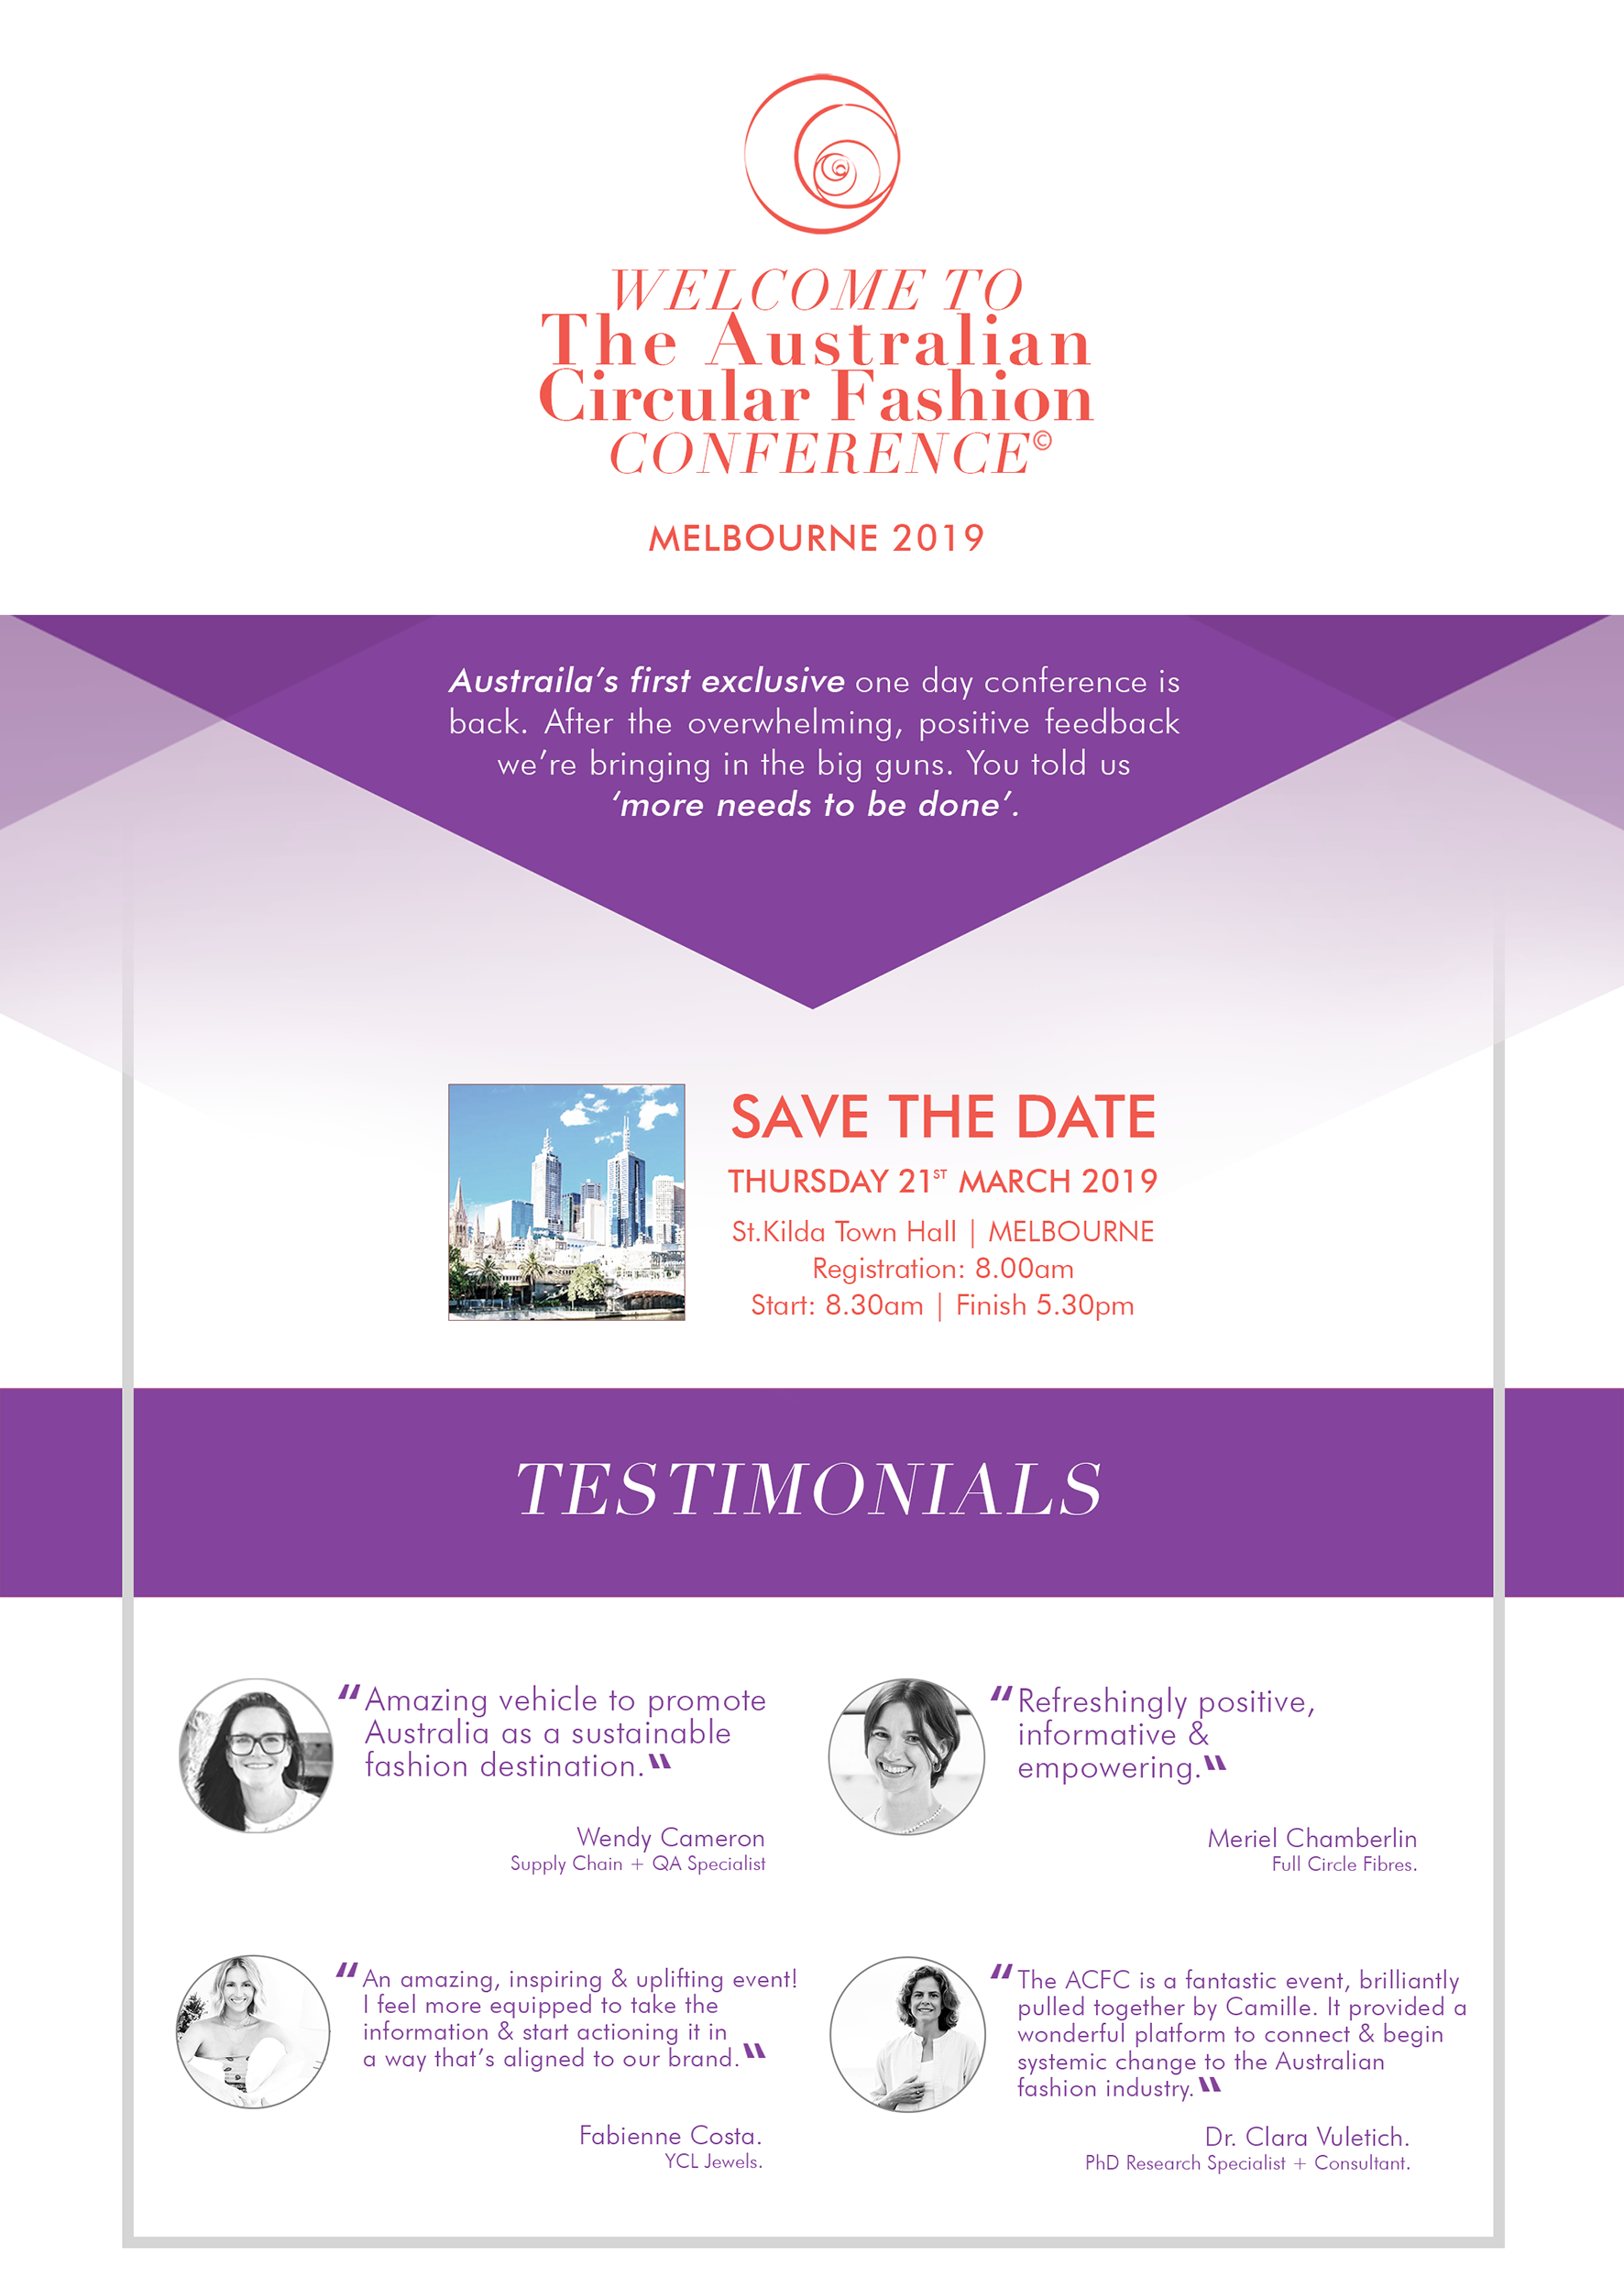 The Australian Circular Fashion Conference 2019